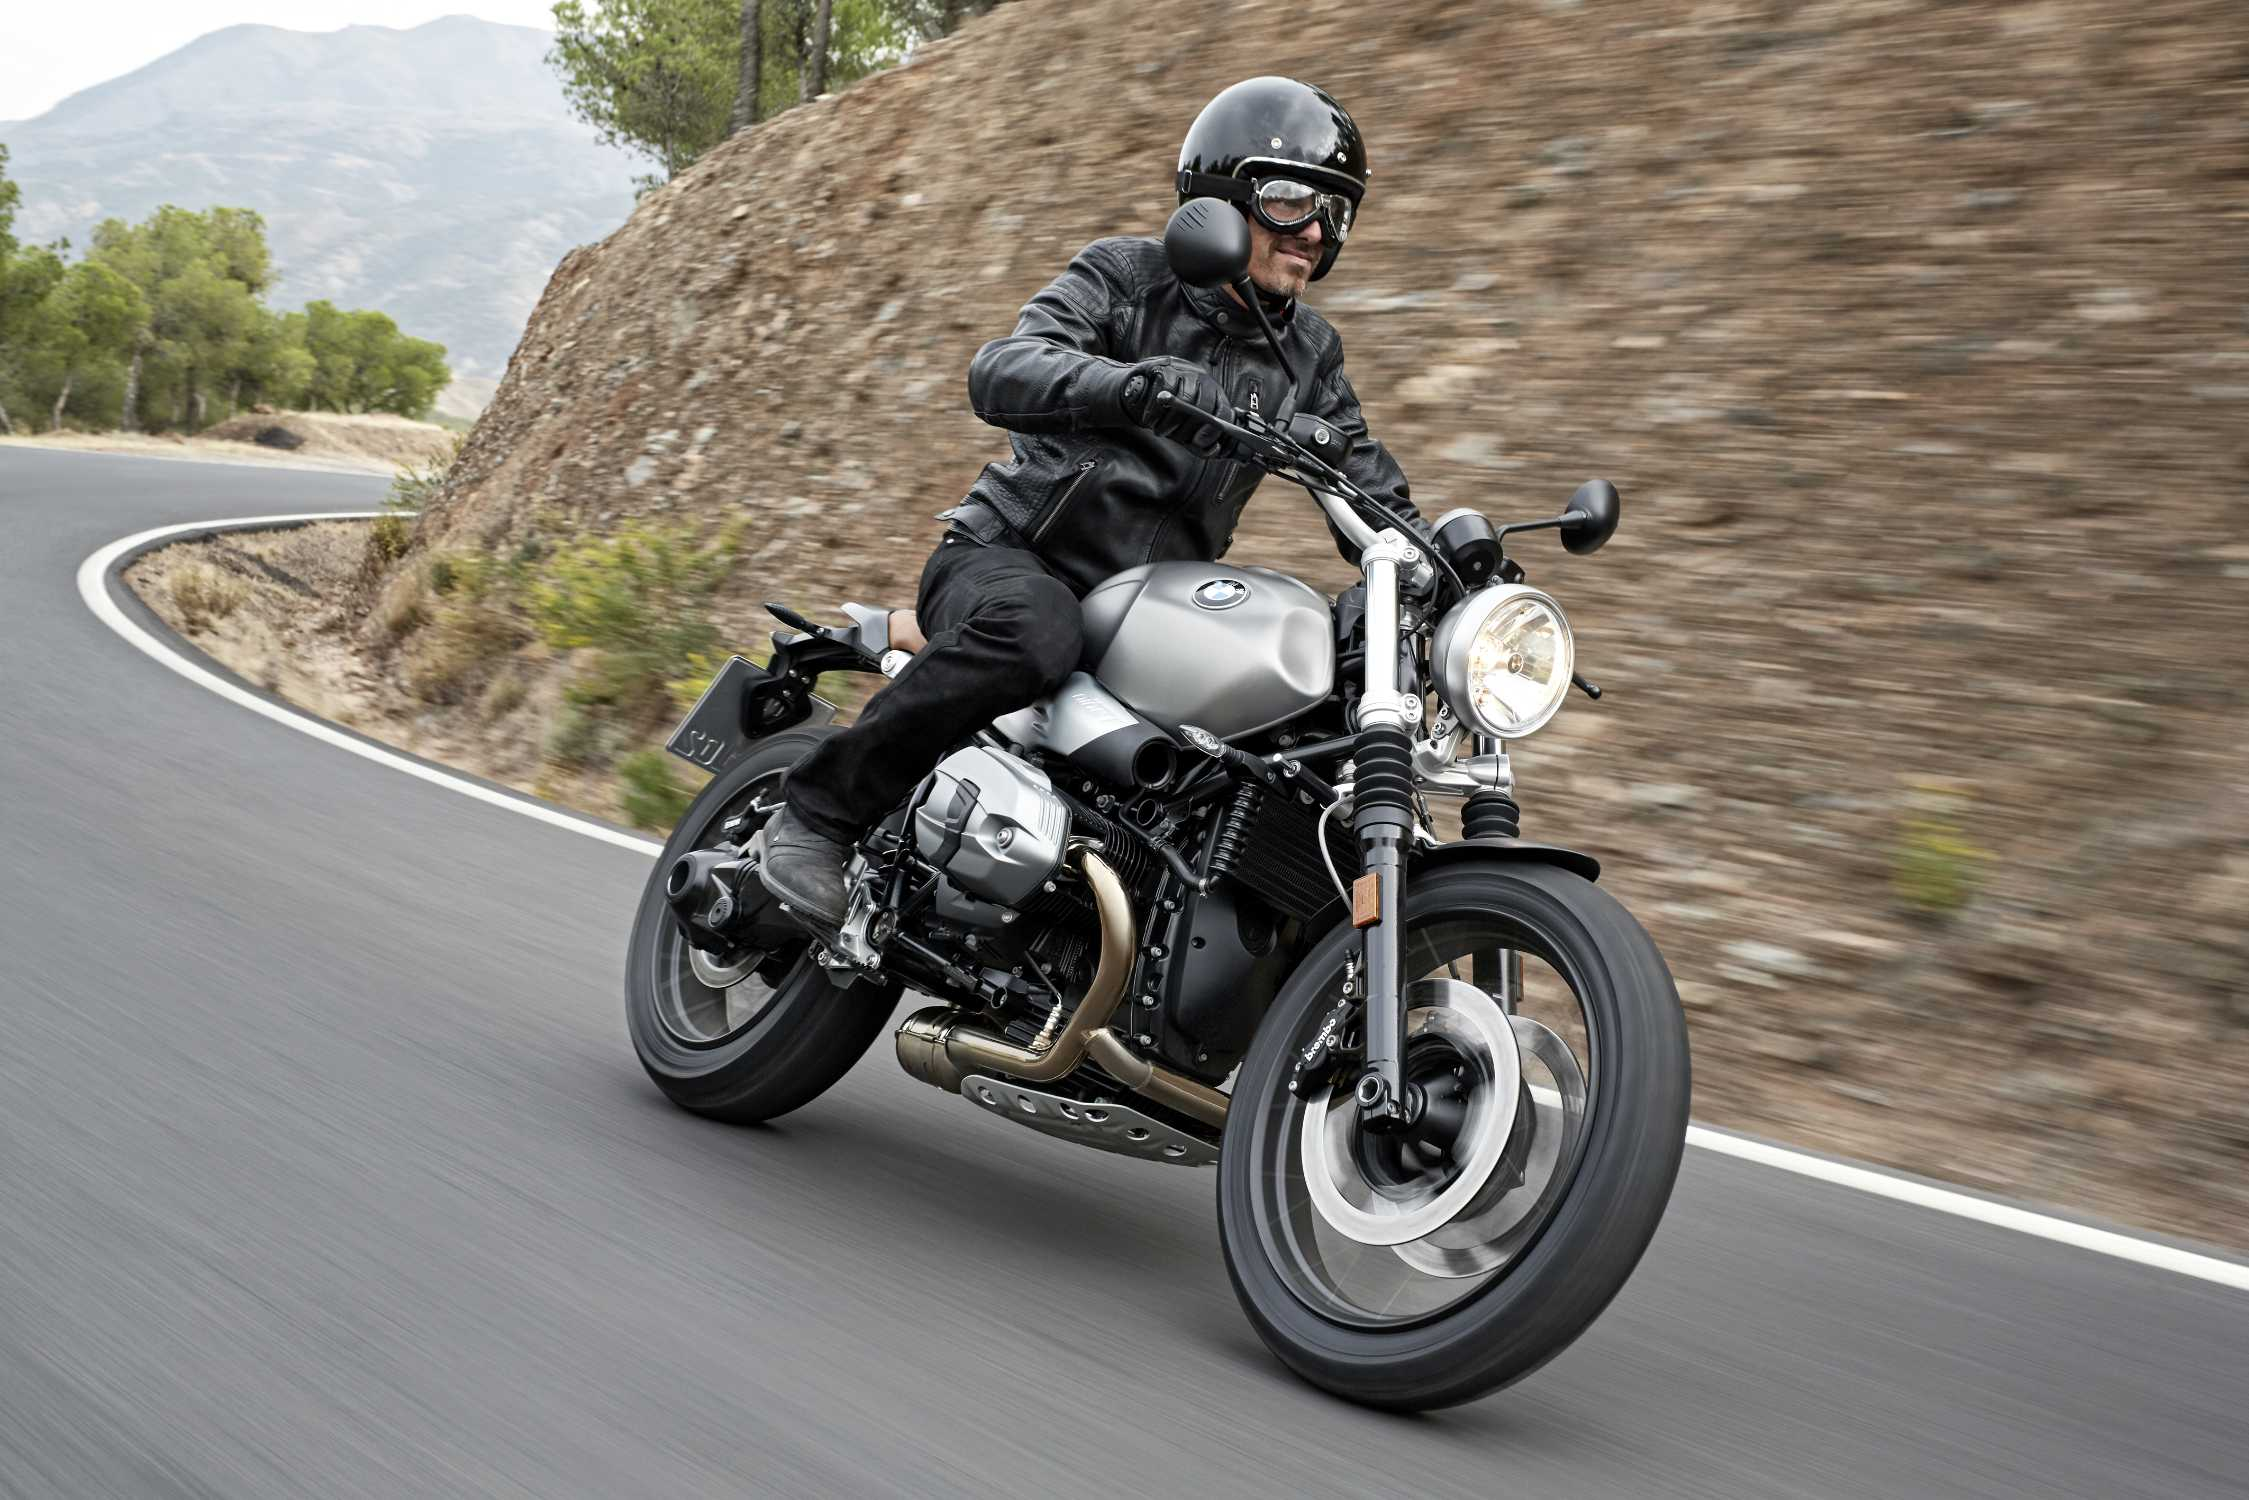 P90203076-the-new-bmw-r-ninet-scrambler-11-2015-2249px Extraordinary Bmw R 1200 R Nine T Cars Trend